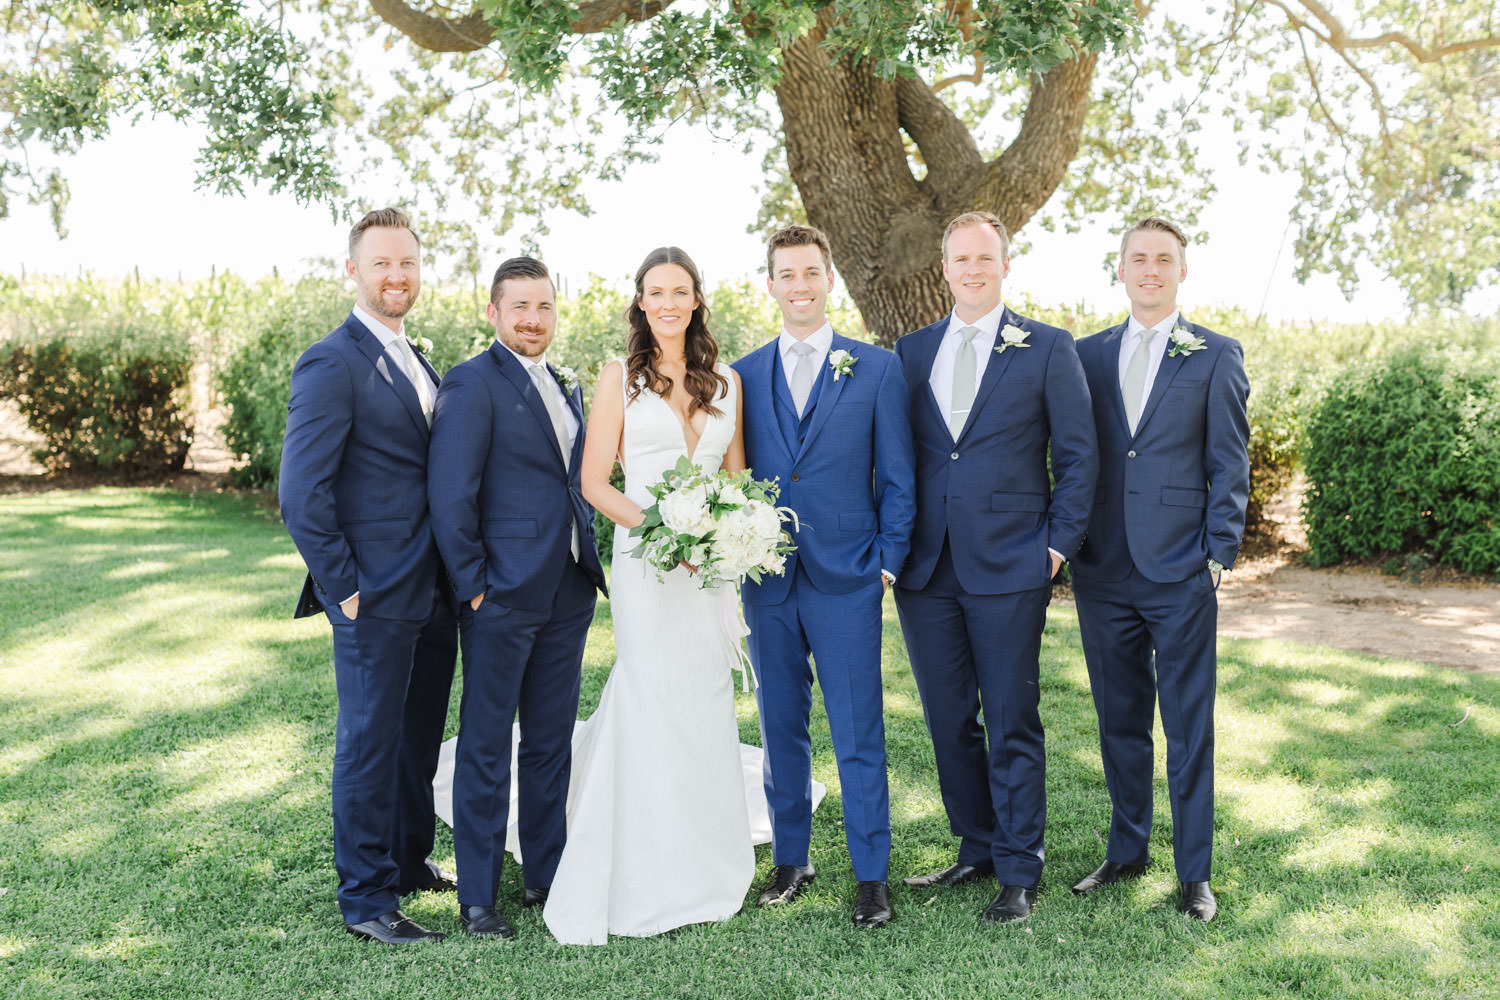 Bride and groom with groomsmen in navy suits for Gainey Vineyards wedding, Cavin Elizabeth Photography